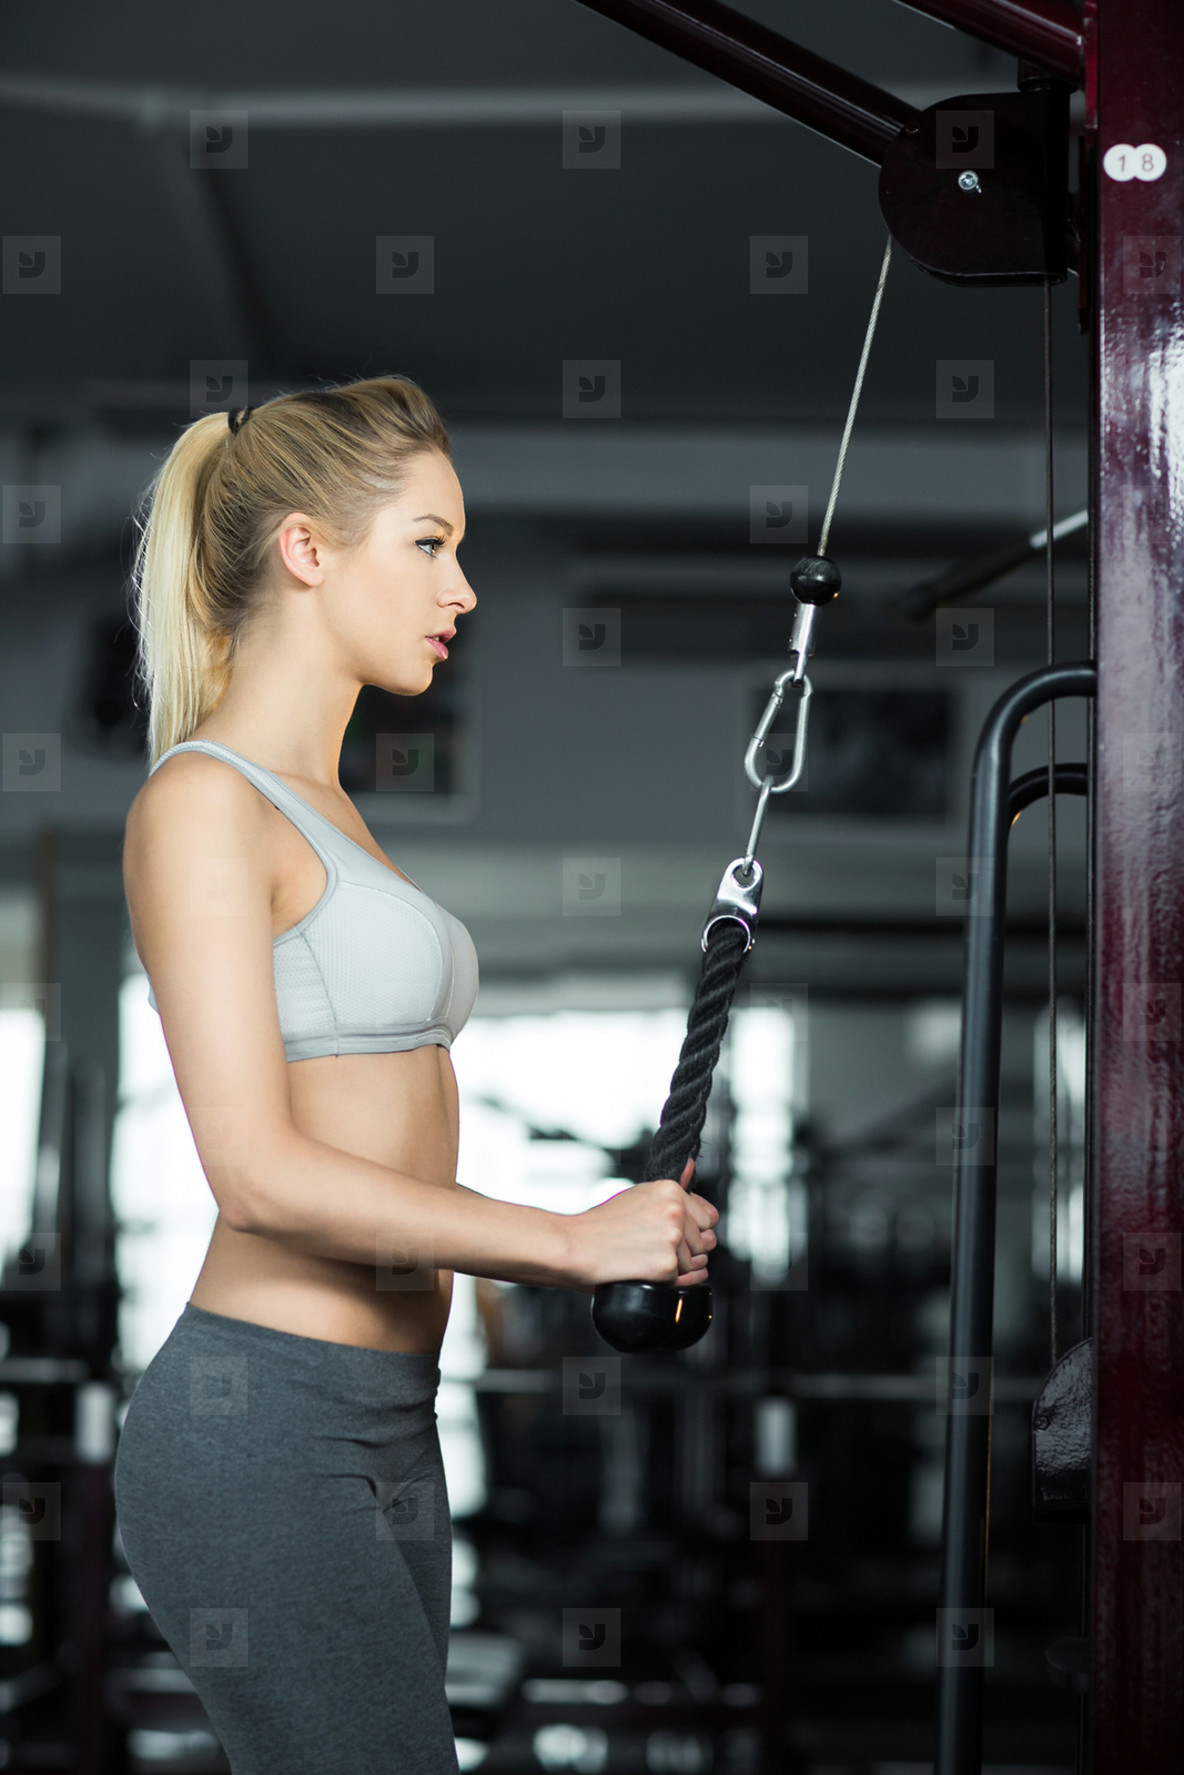 Girl doing exercise for the chest in the gym